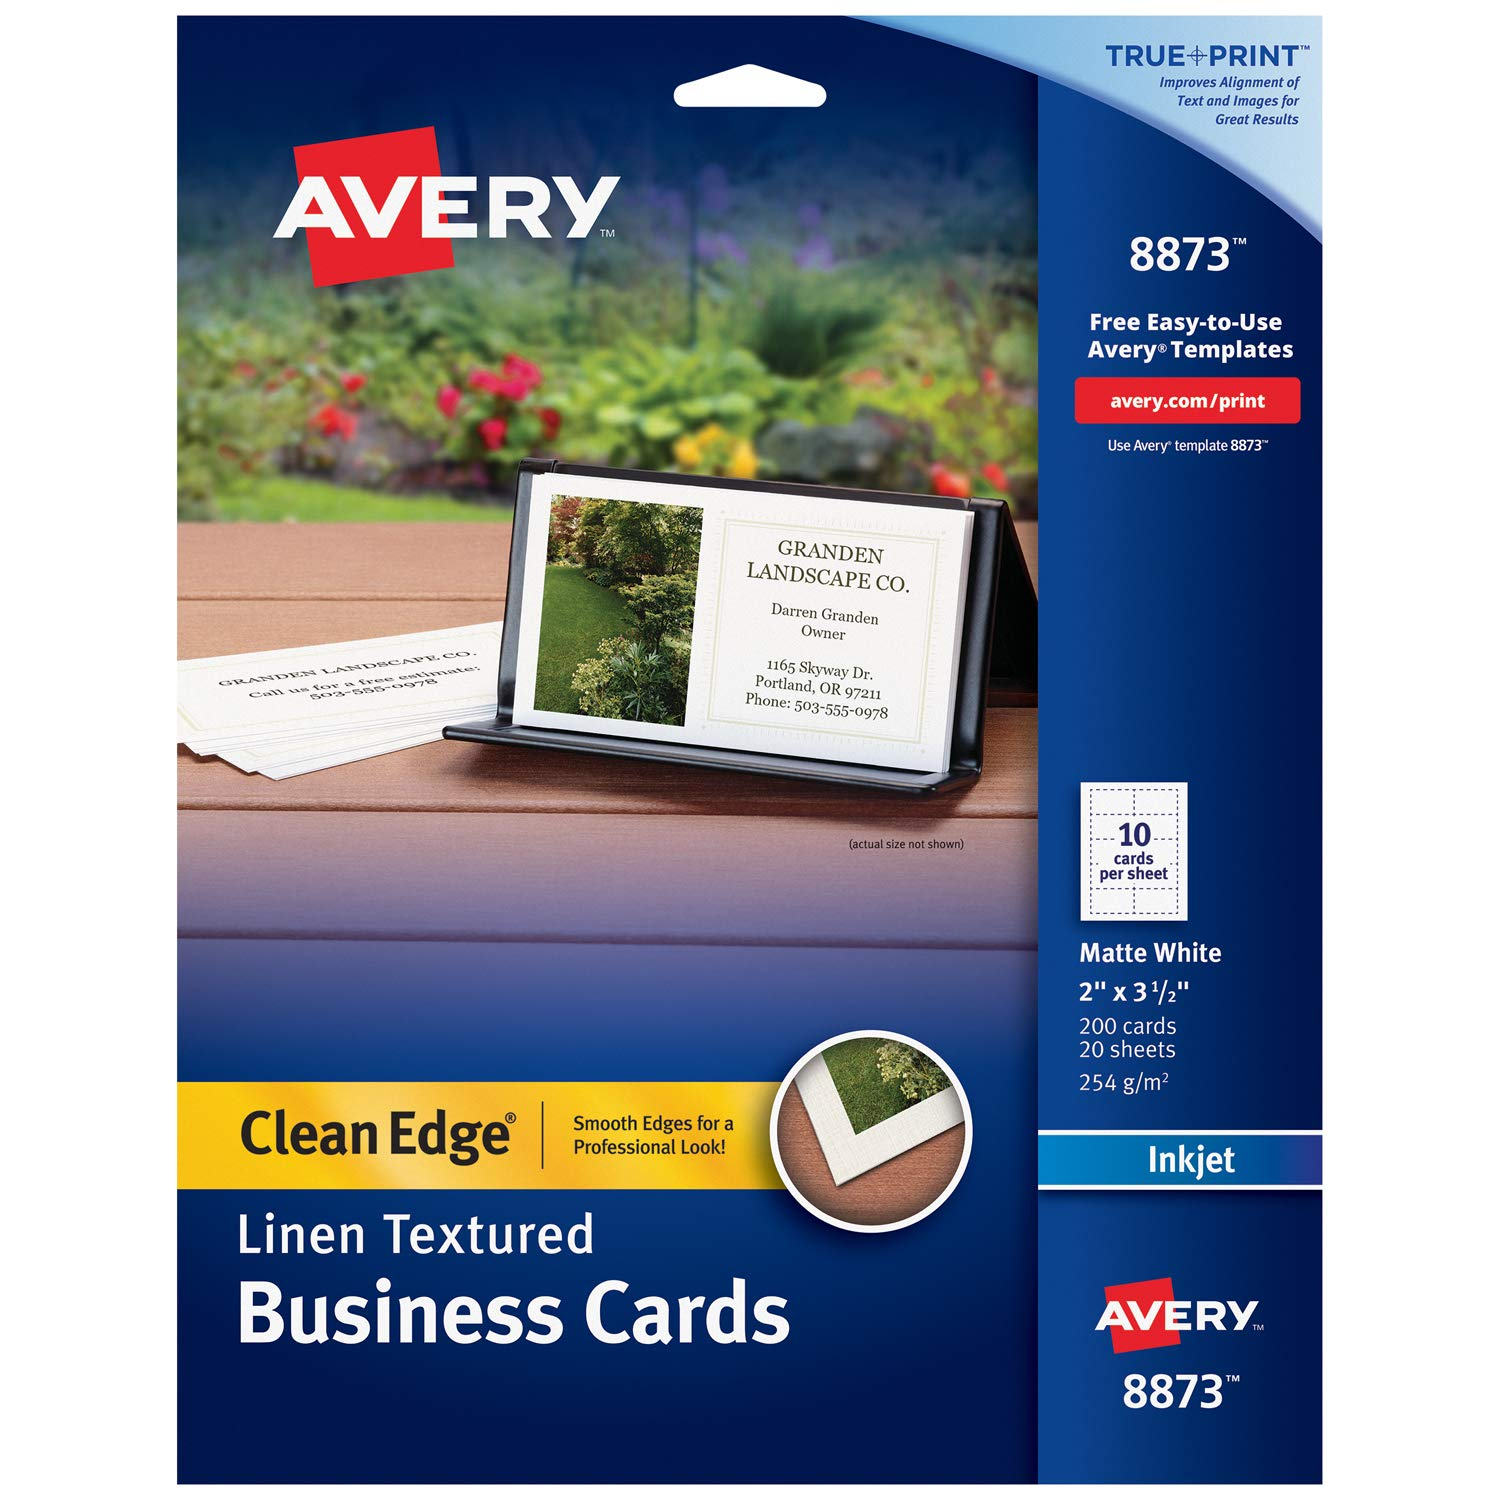 Avery Printable Business Cards, Inkjet Printers, 200 Cards, 2 x 3.5, Clean Edge, Heavyweight, Linen Textured (8873)